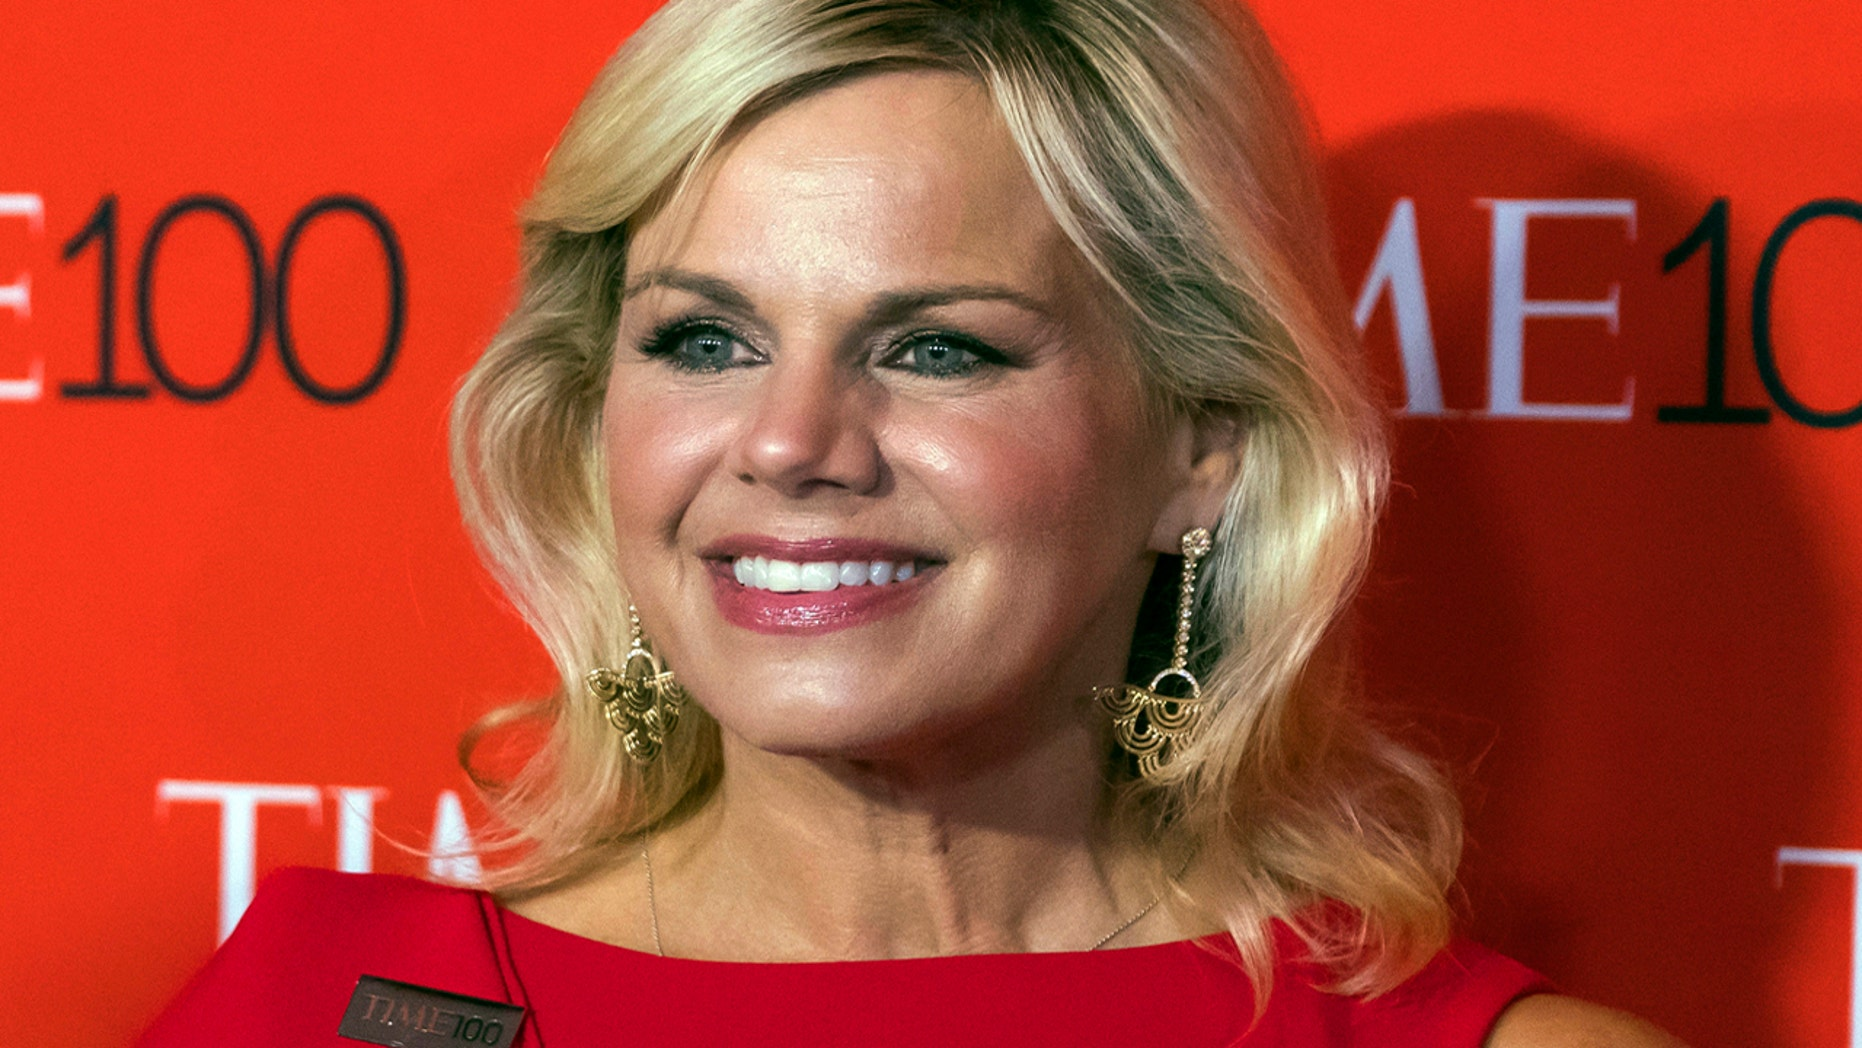 Gretchen Carlson became chairwoman of the Miss America Organization after an email scandal led to the resignations of previous pageant officials. Carlson is seen at an event in New York, April 25, 2017.